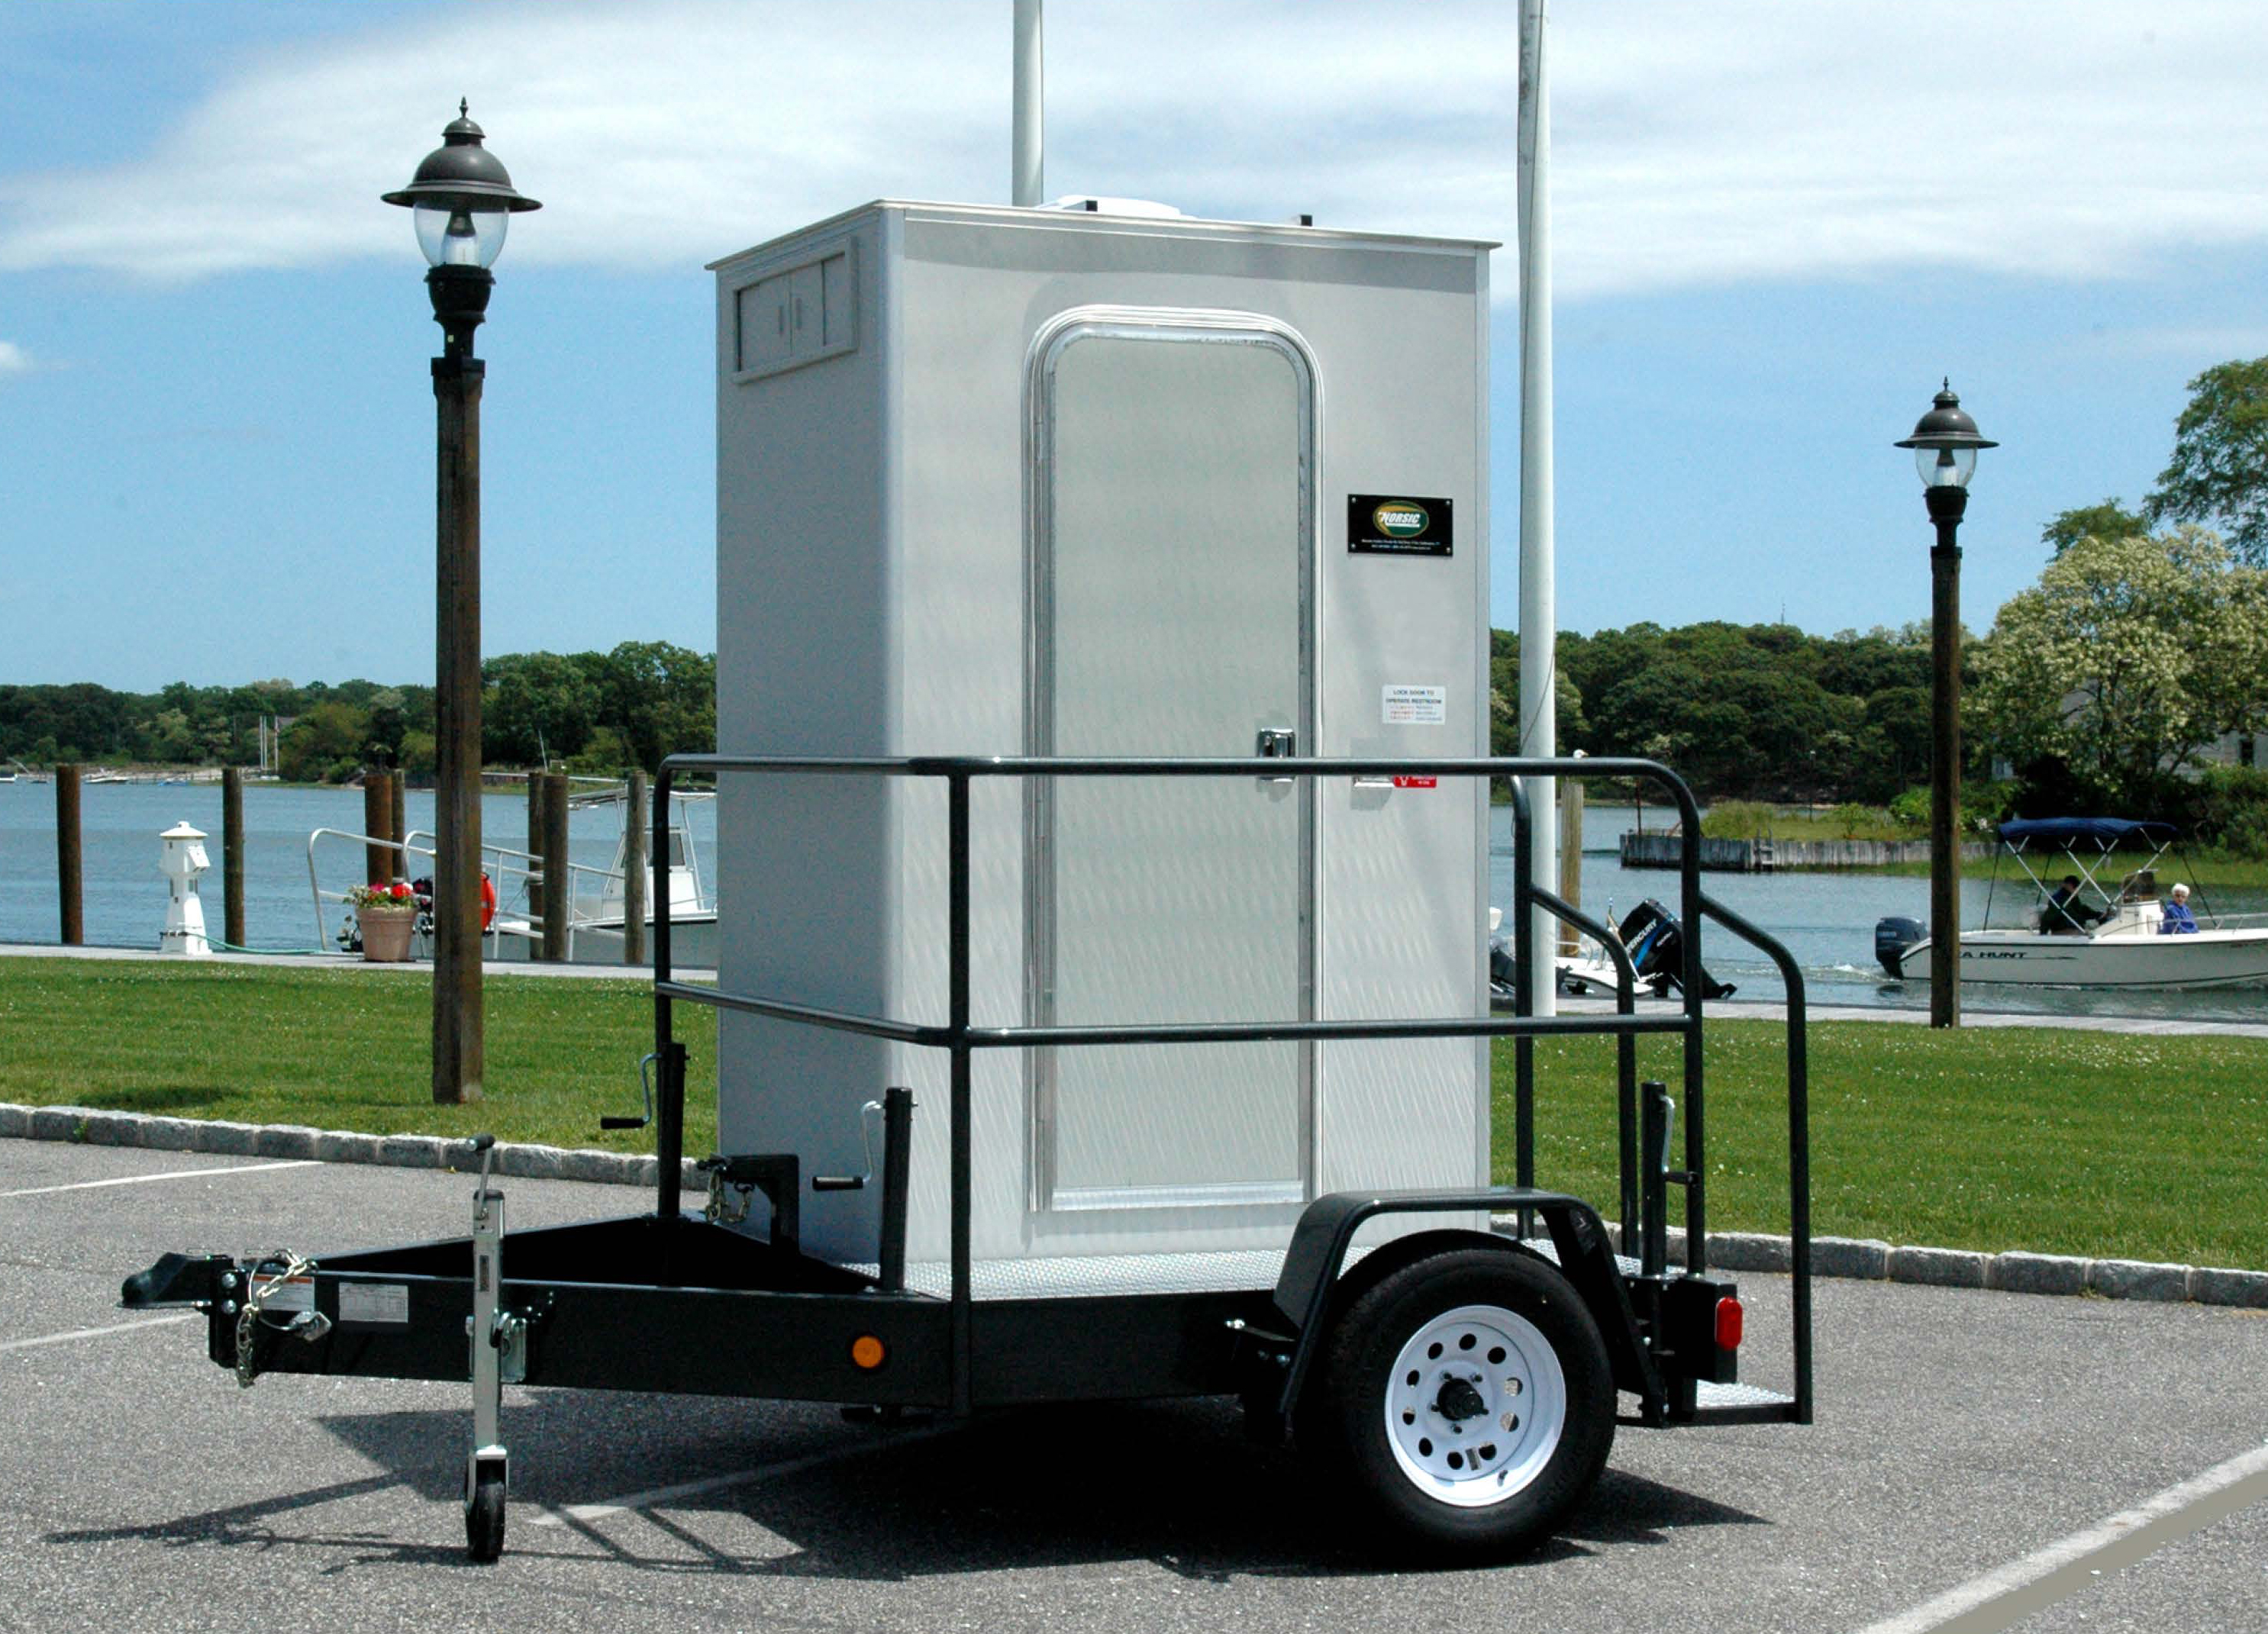 Restroom on Trailer